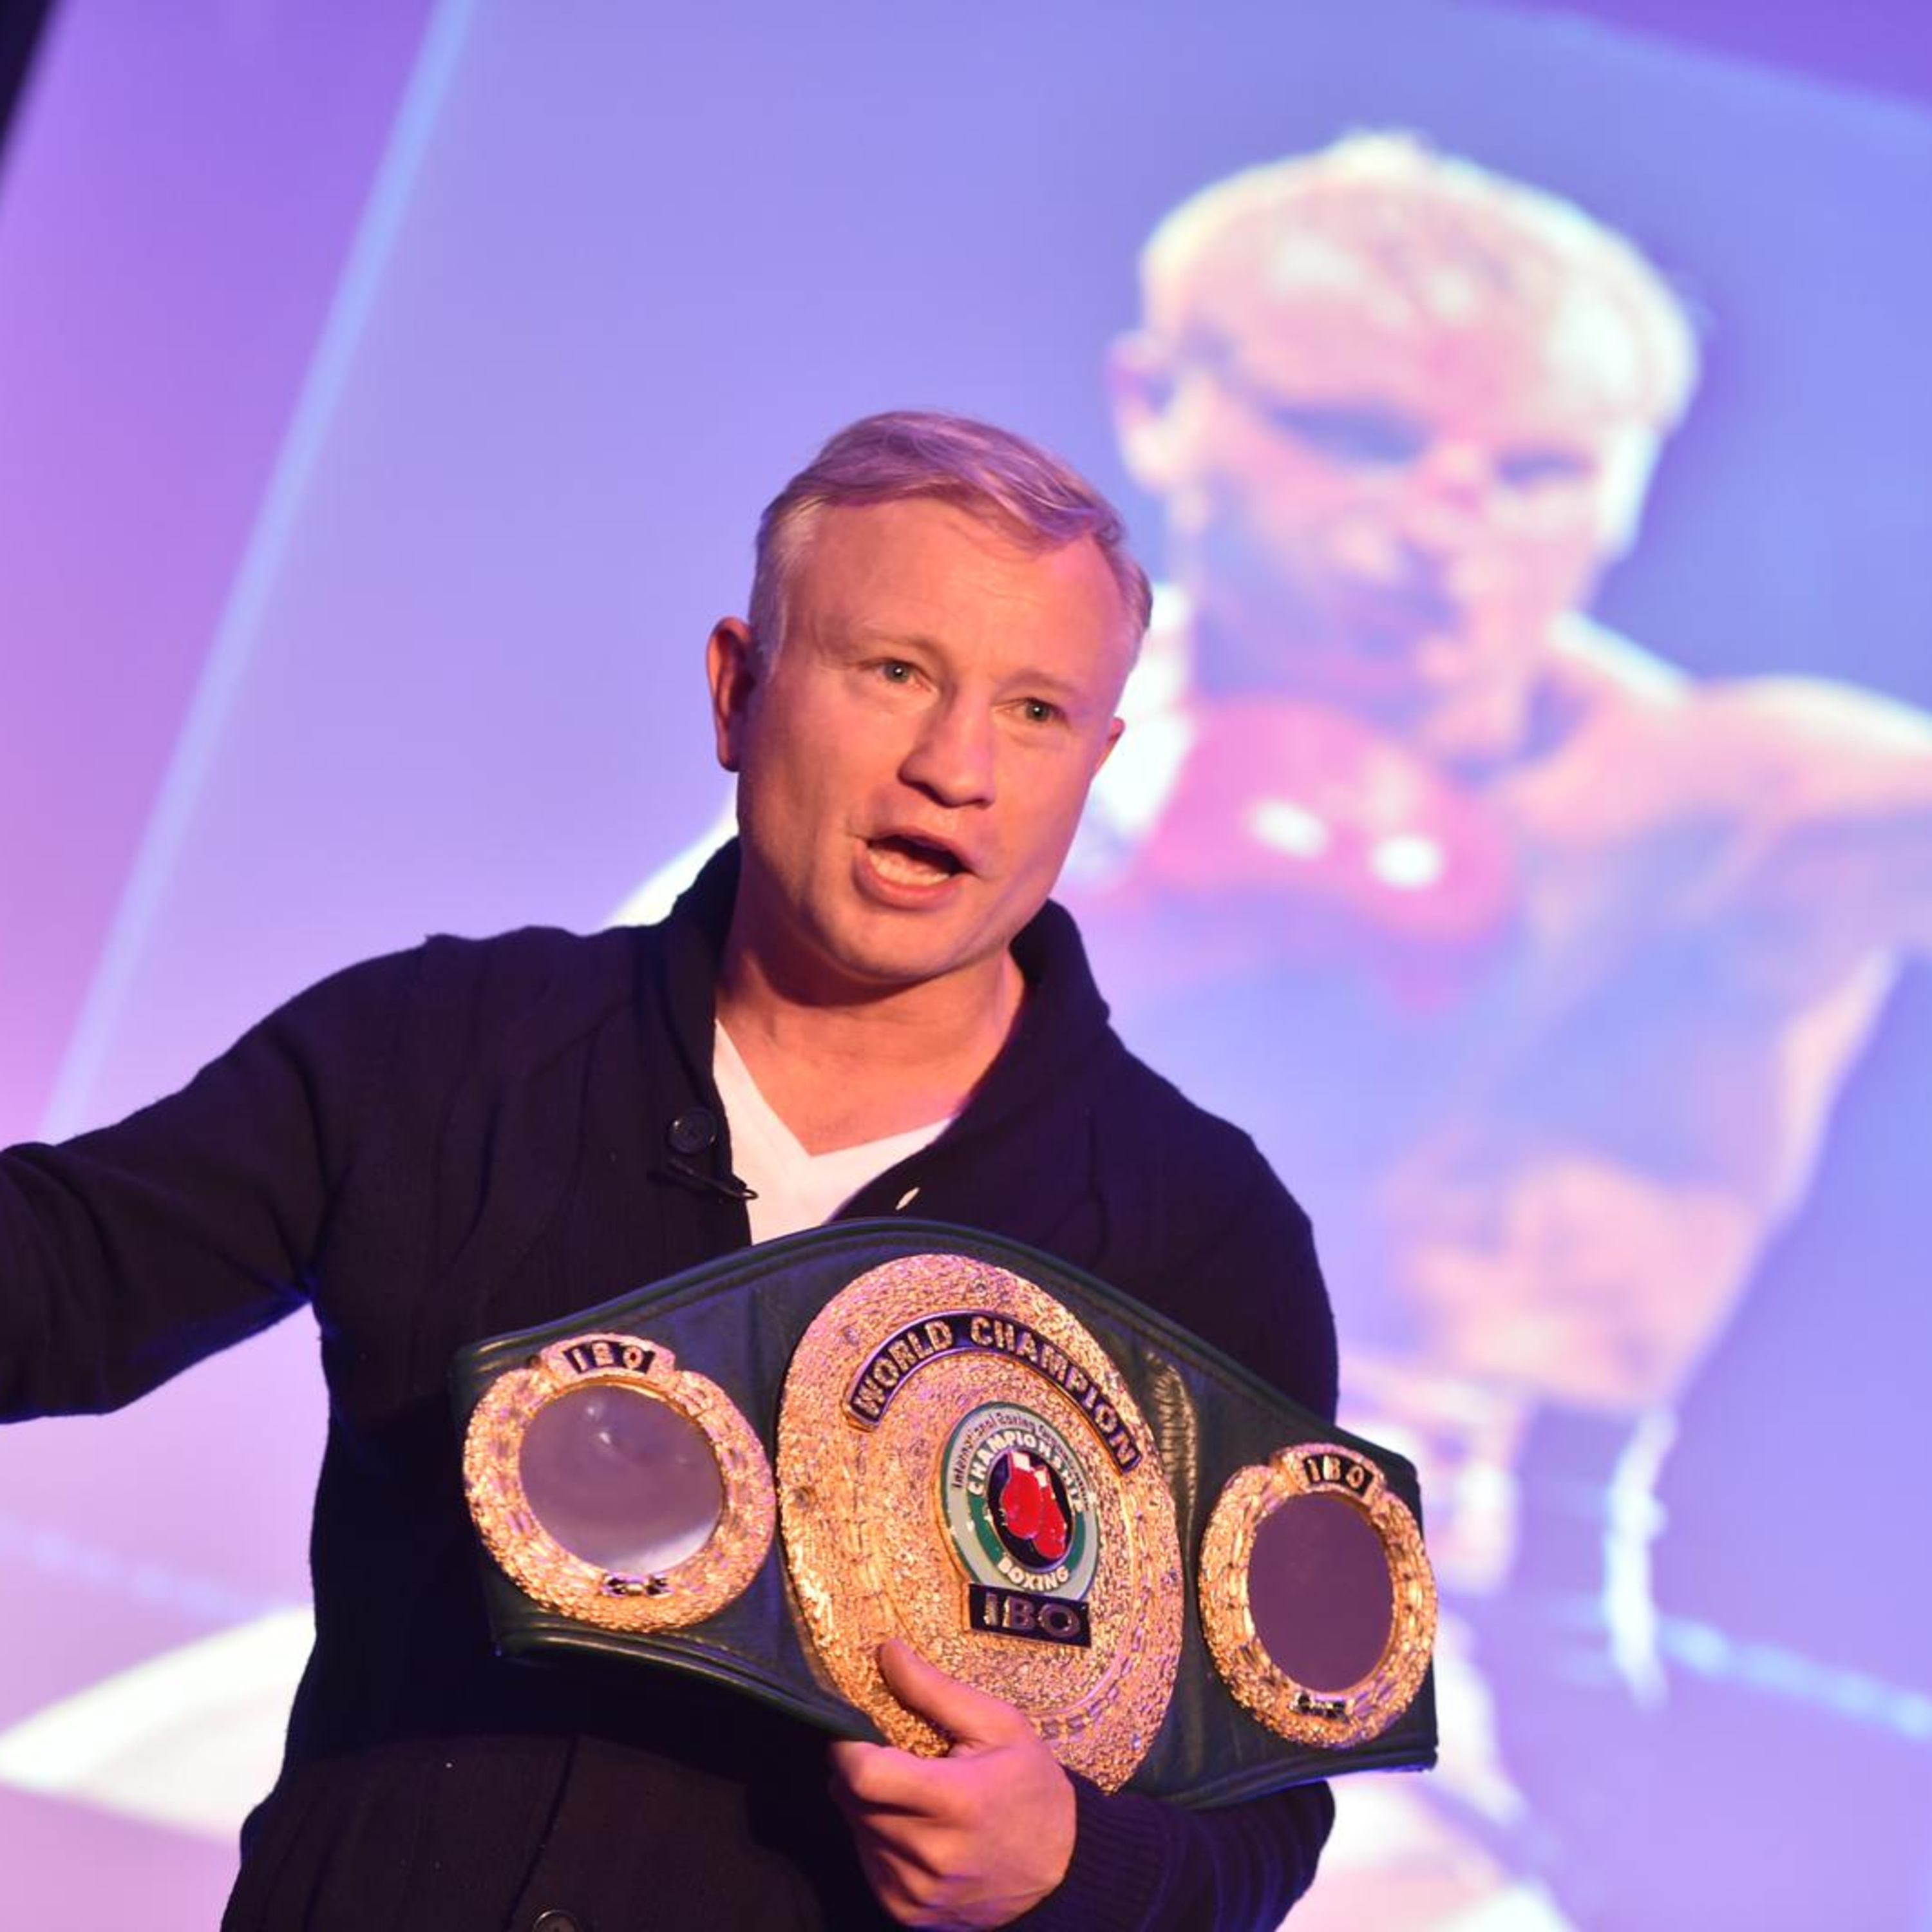 Interview with Billy Schwer, World championship boxer and motivational speaker